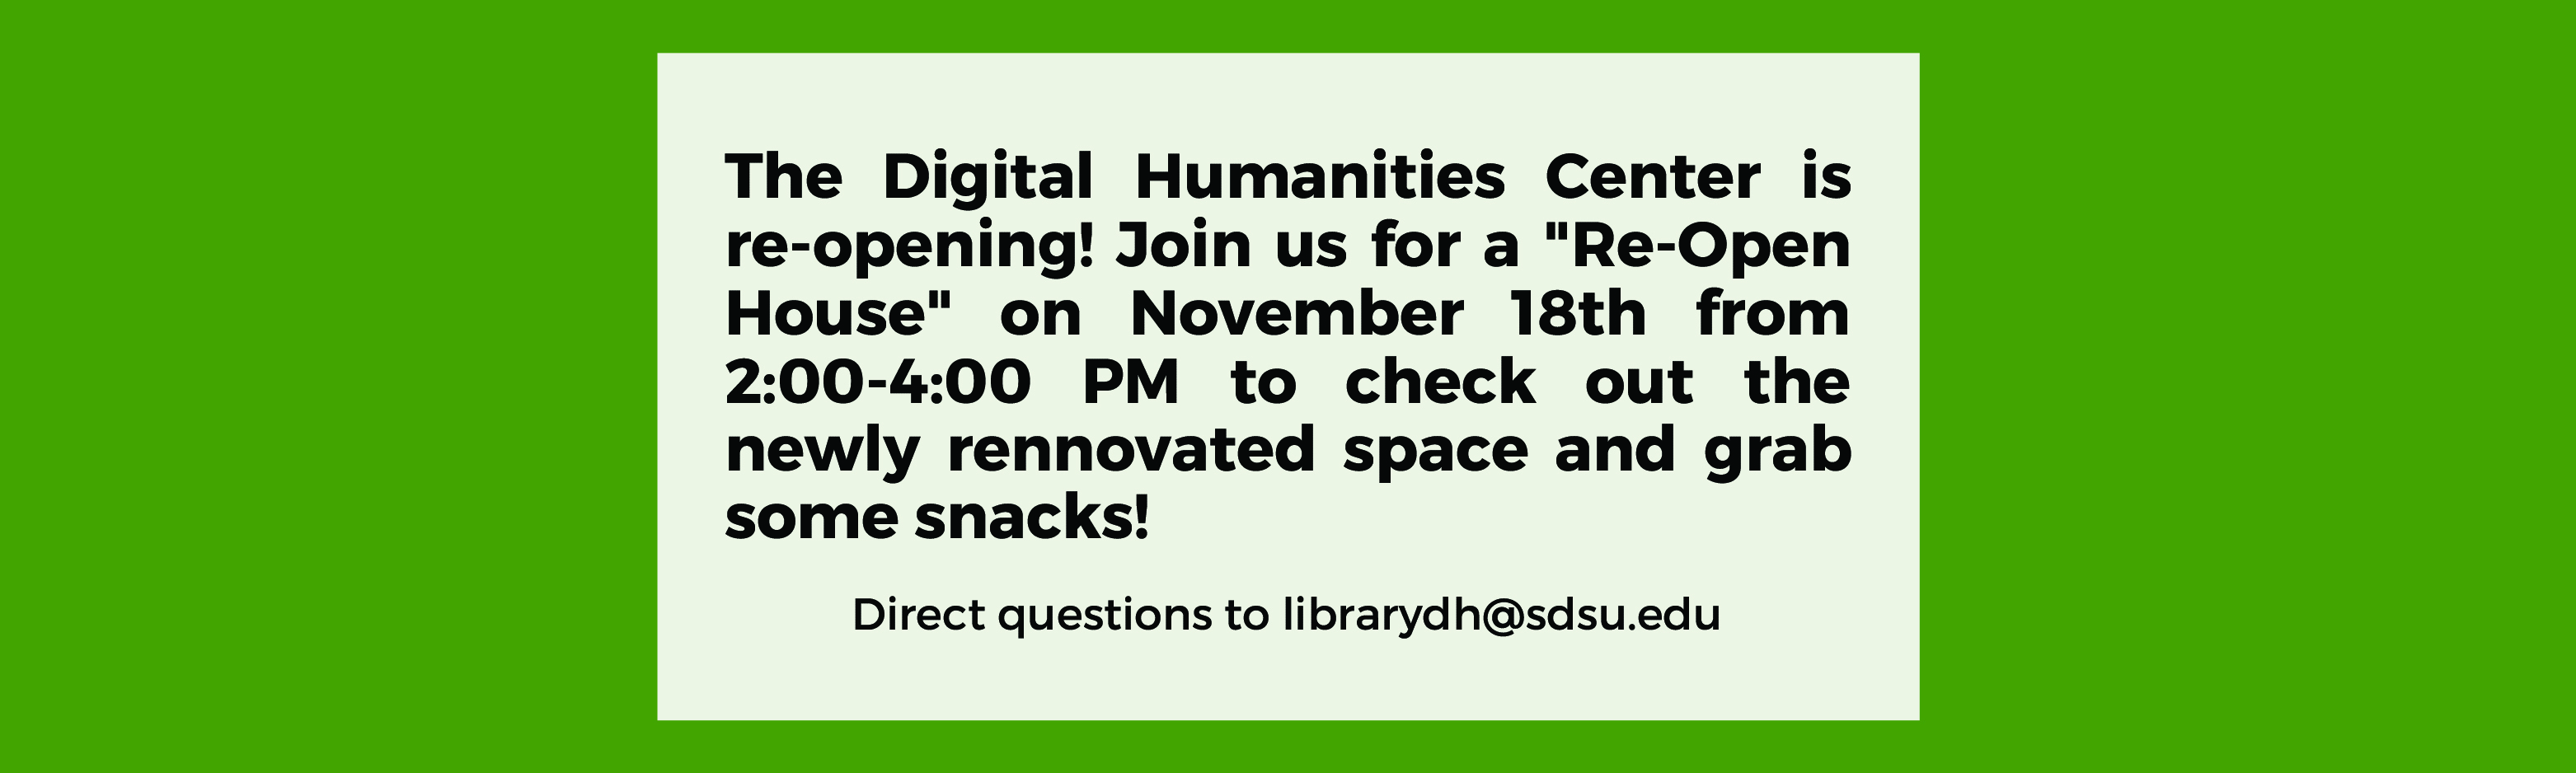 The Digital Humanities Center is re-opening! Join us for a